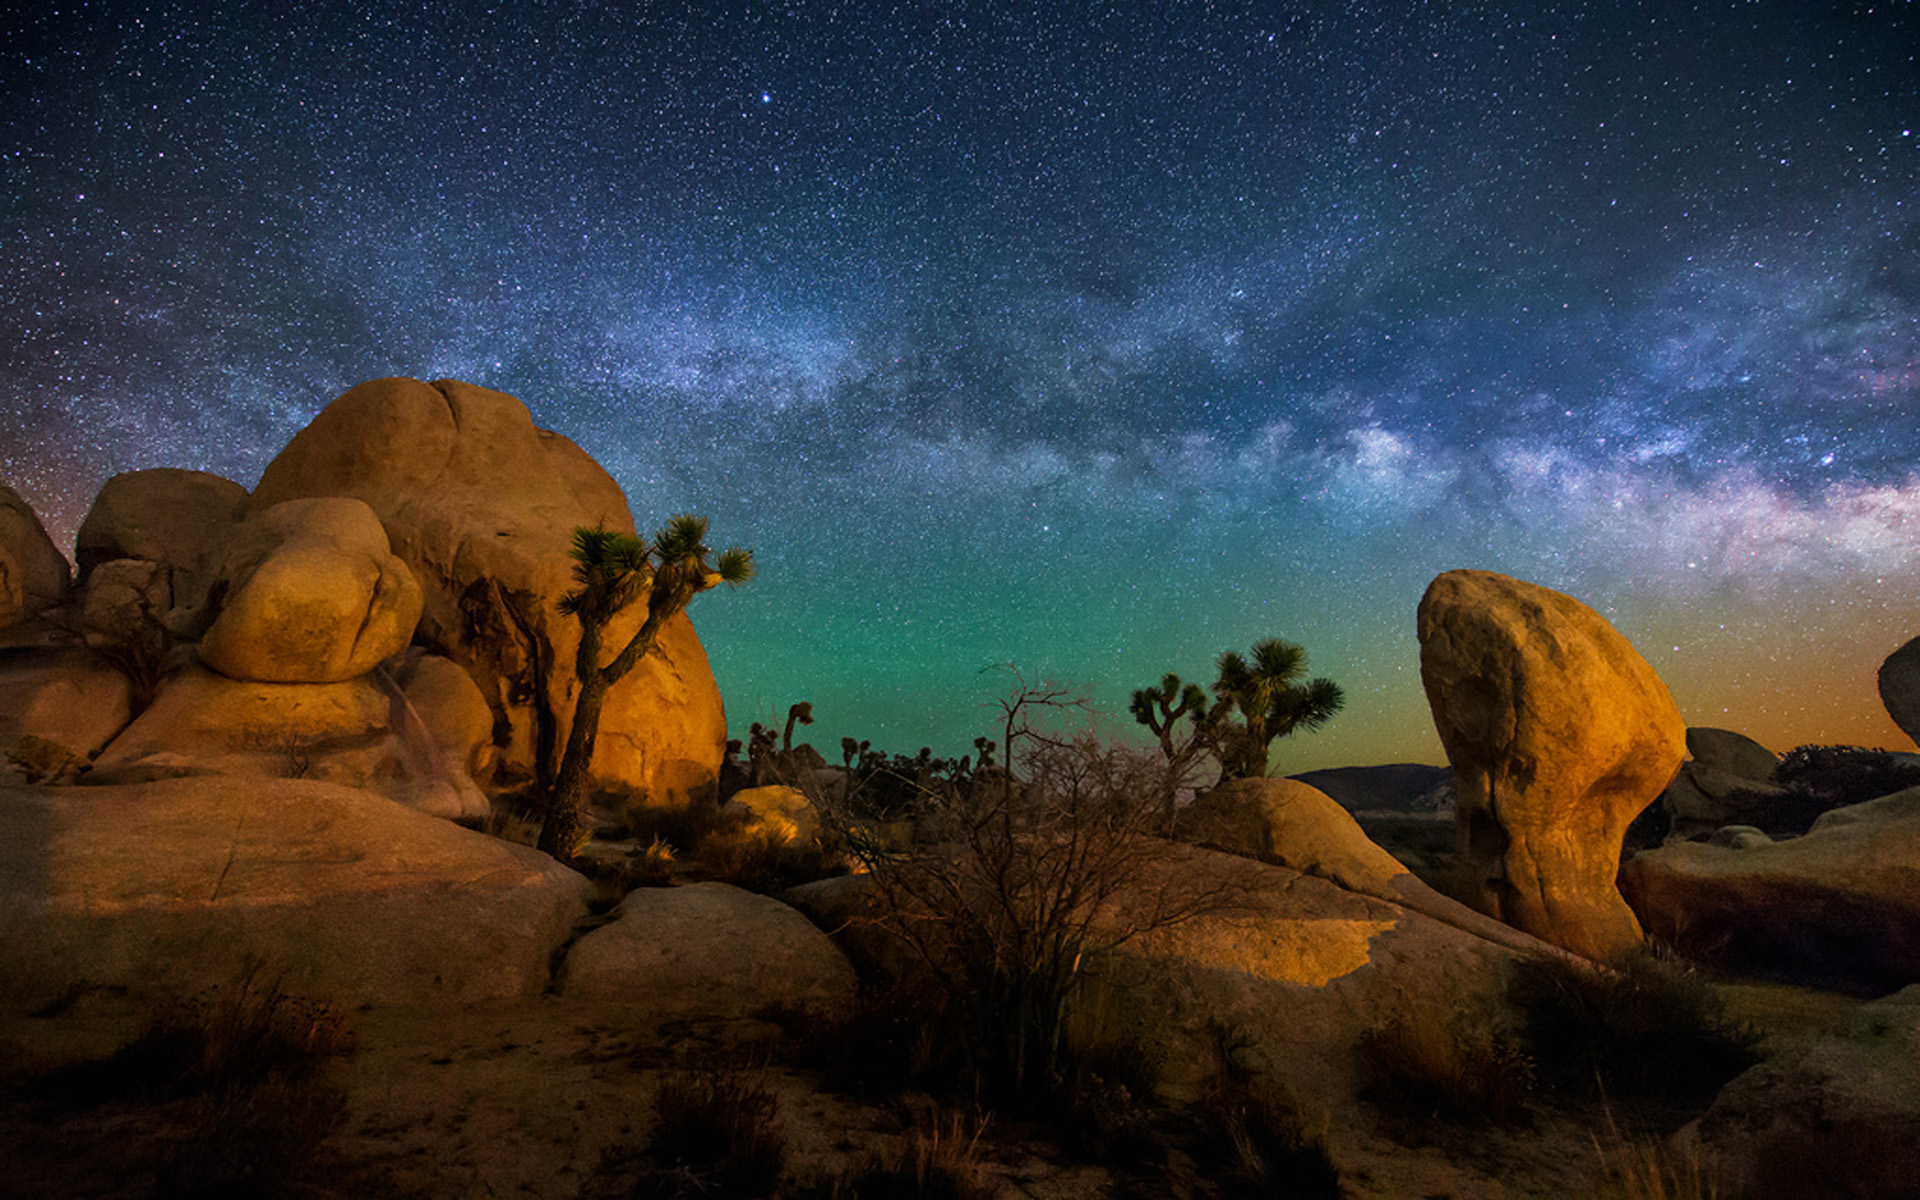 Wallpaper Hd 1080p Free Download Cars Starry Sky Joshua Tree National Park Usa Hd Wallpaper For